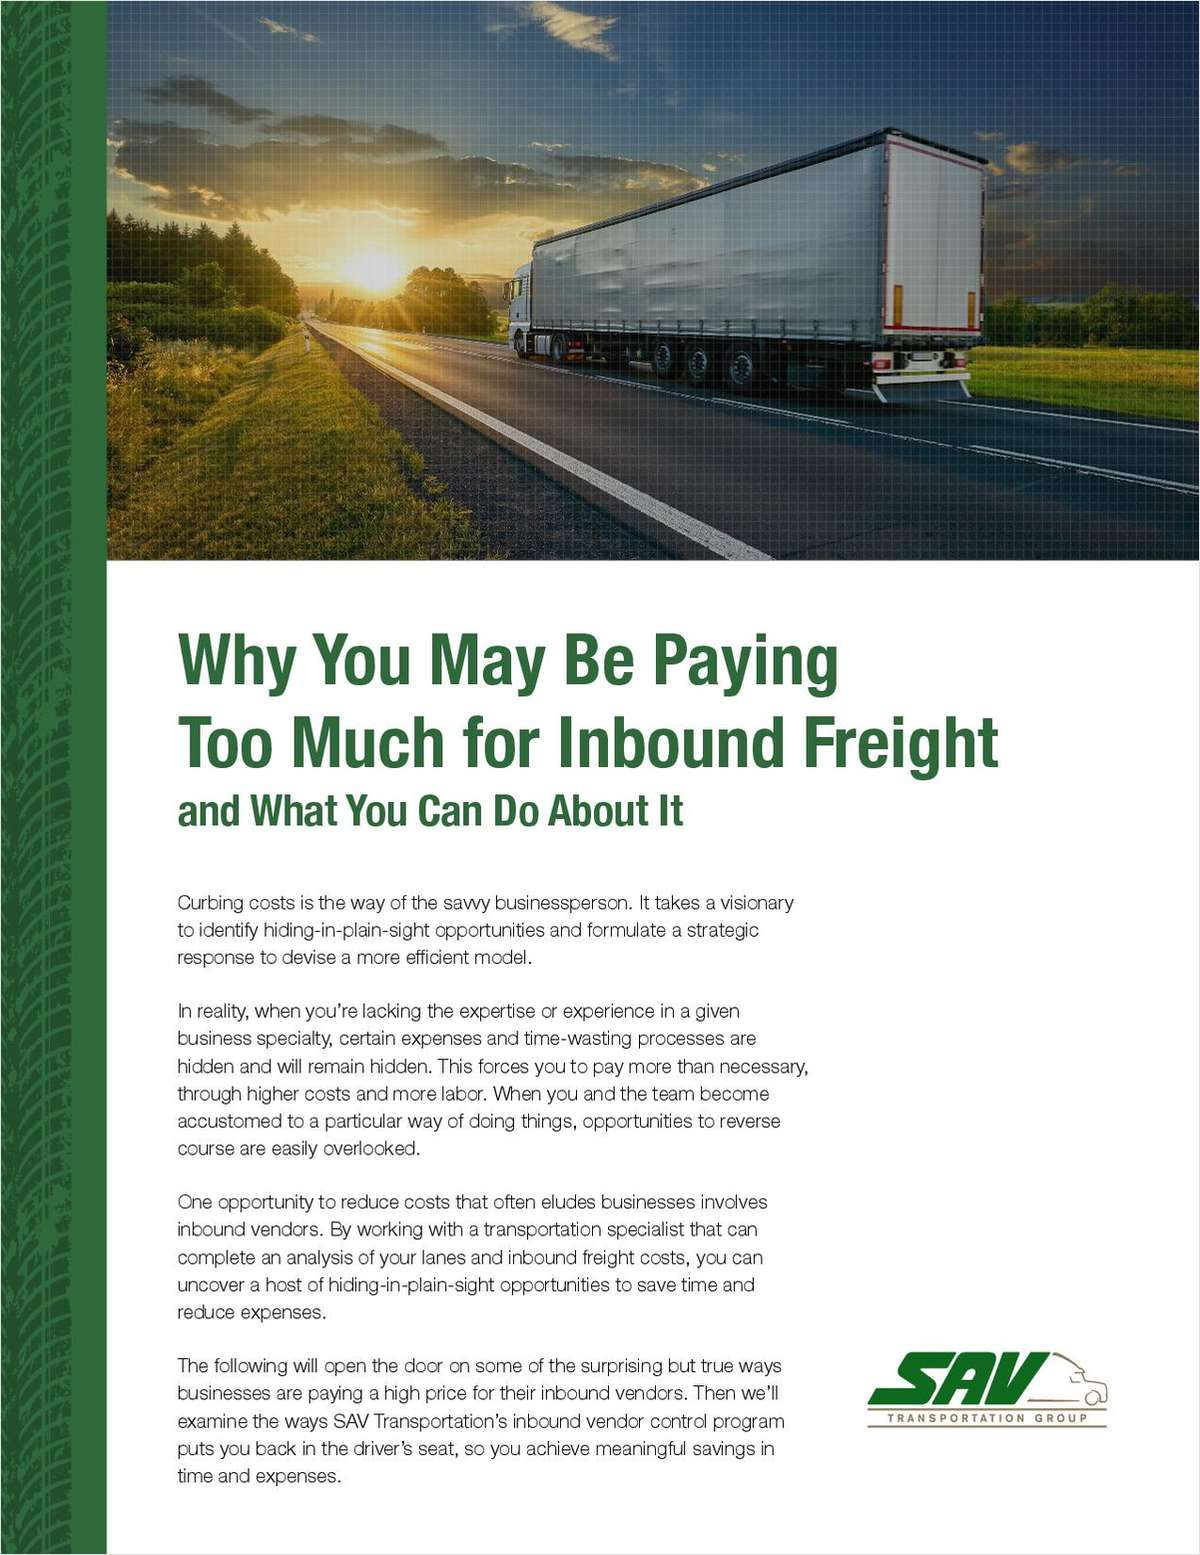 The Ultimate Solution to Curbing Excess Costs on Inbound Shipping